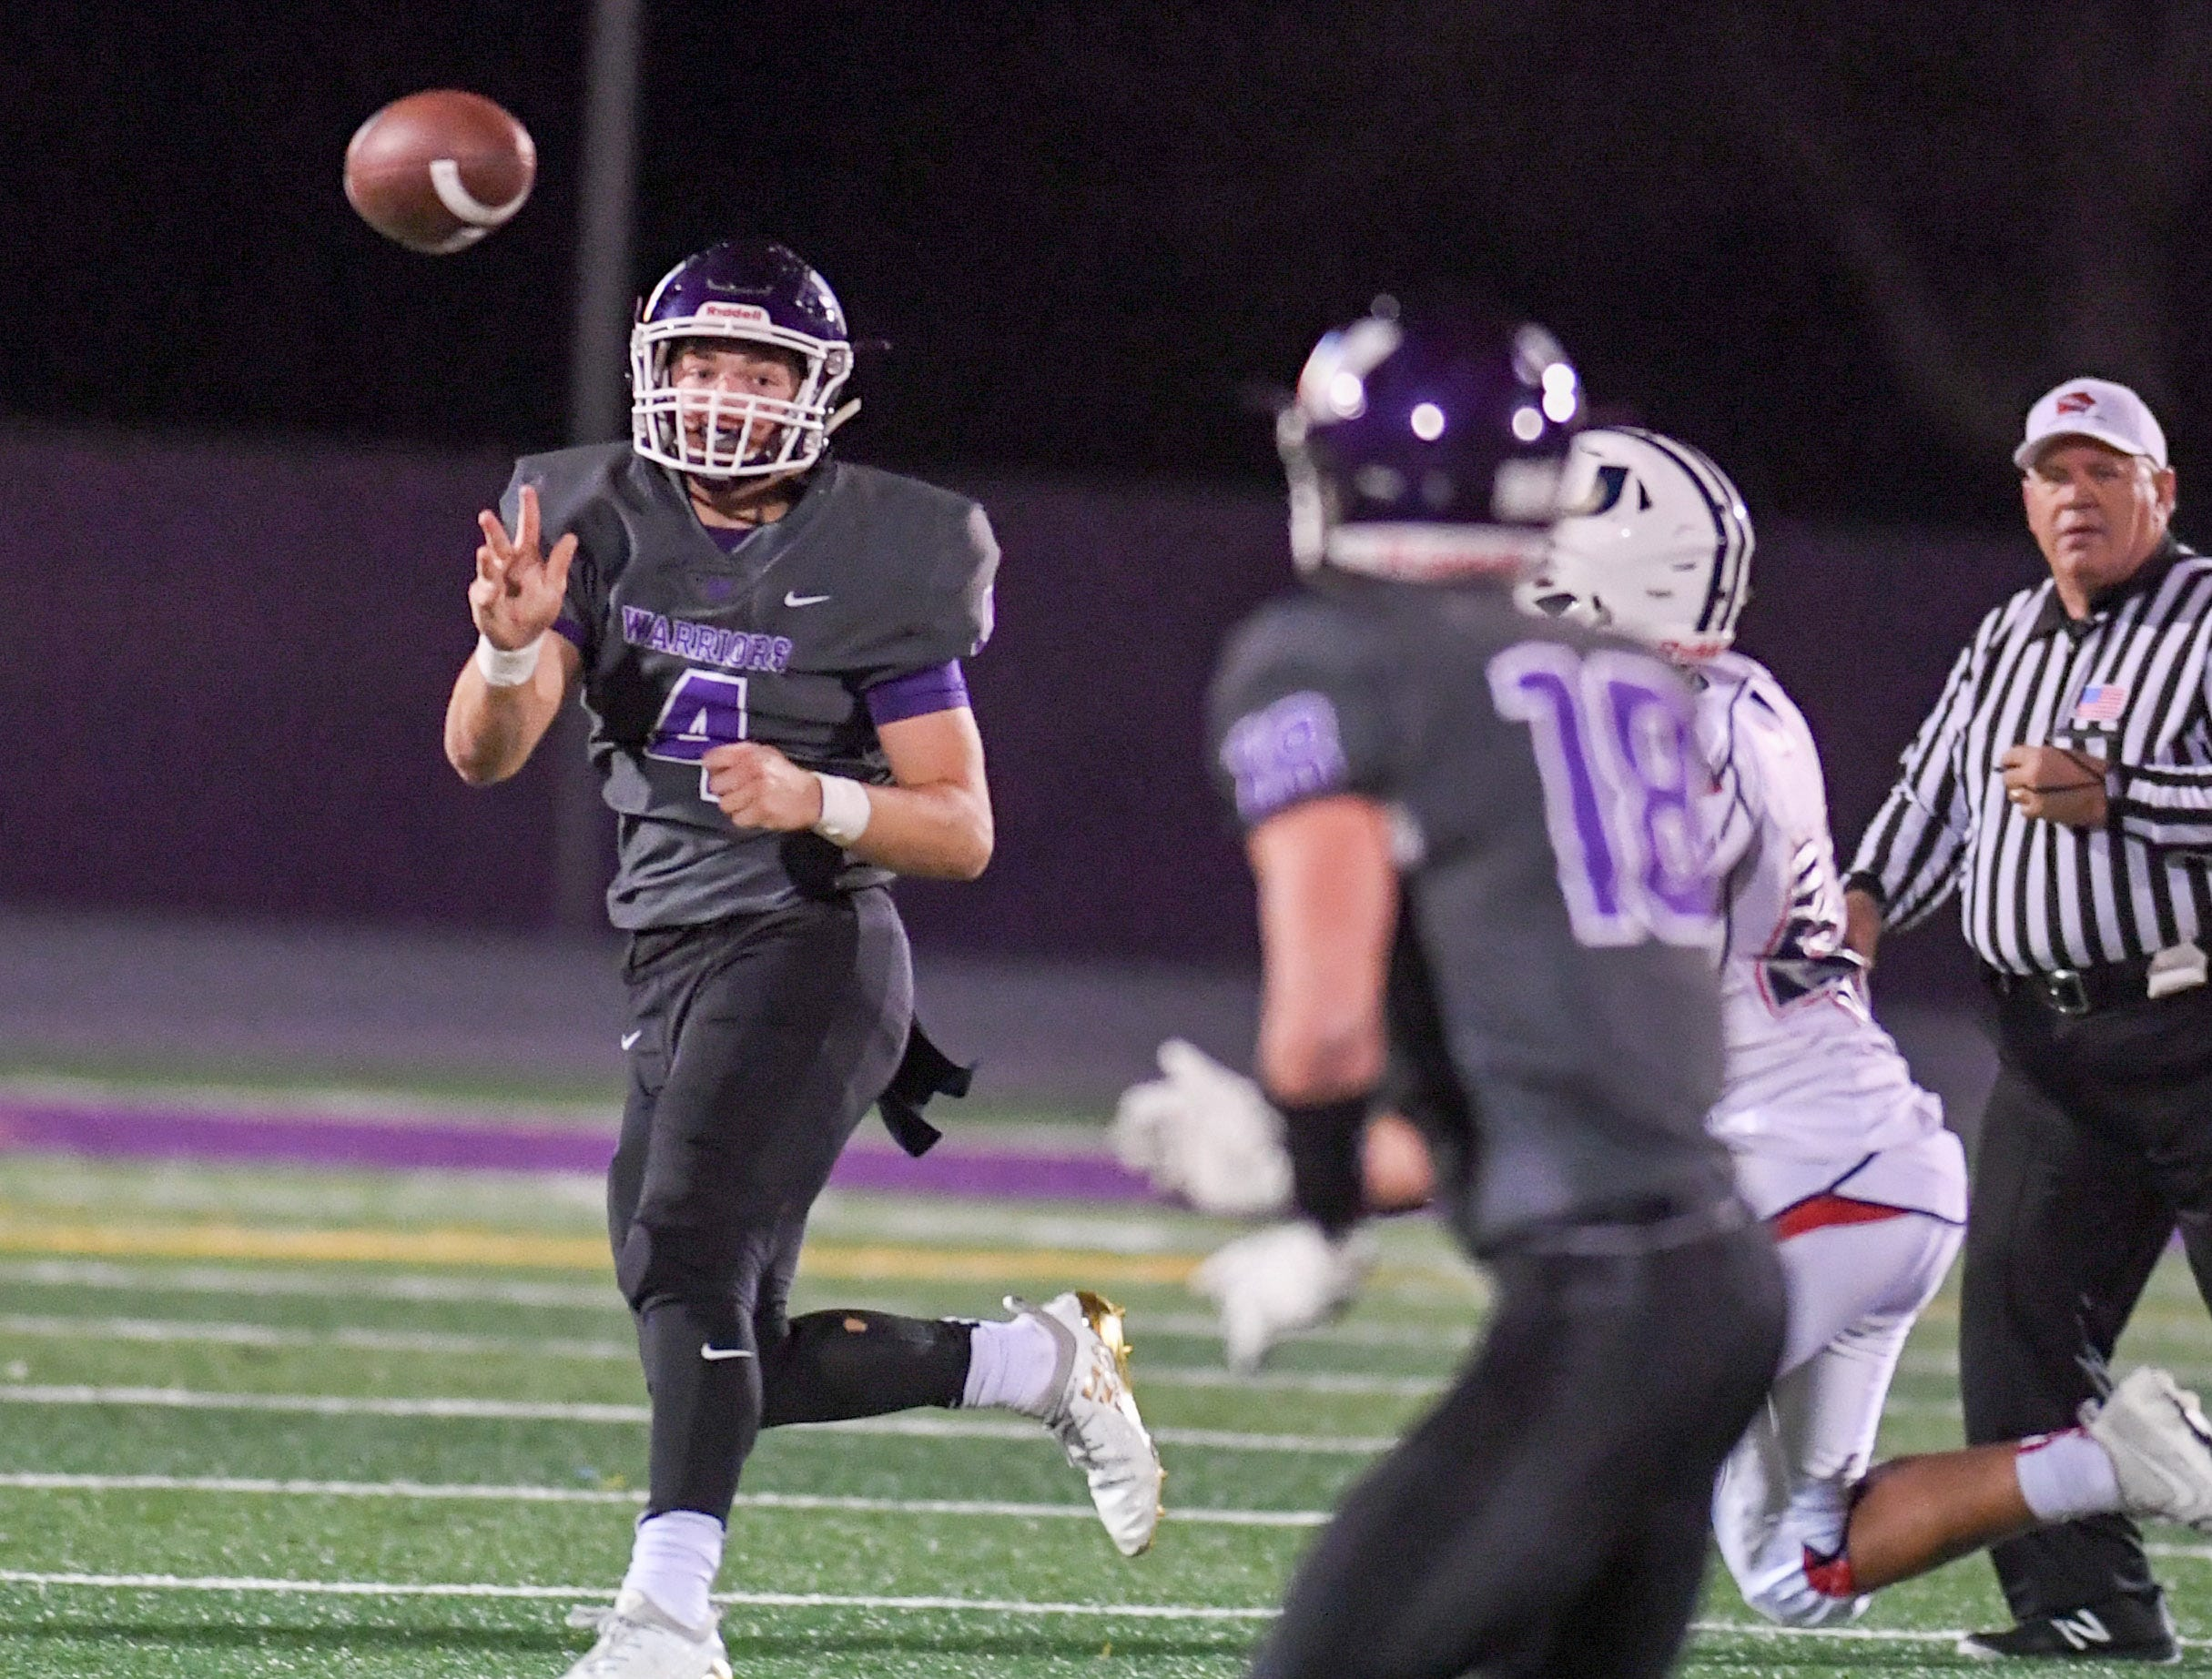 Waukee Quarterback Mitch Randall (4) makes a pass to Zach Eaton (18) on Friday, Oct. 26, 2018 during a playoff game between the Waukee Warriors and the Urbandale J-Hawks at Waukee High School.